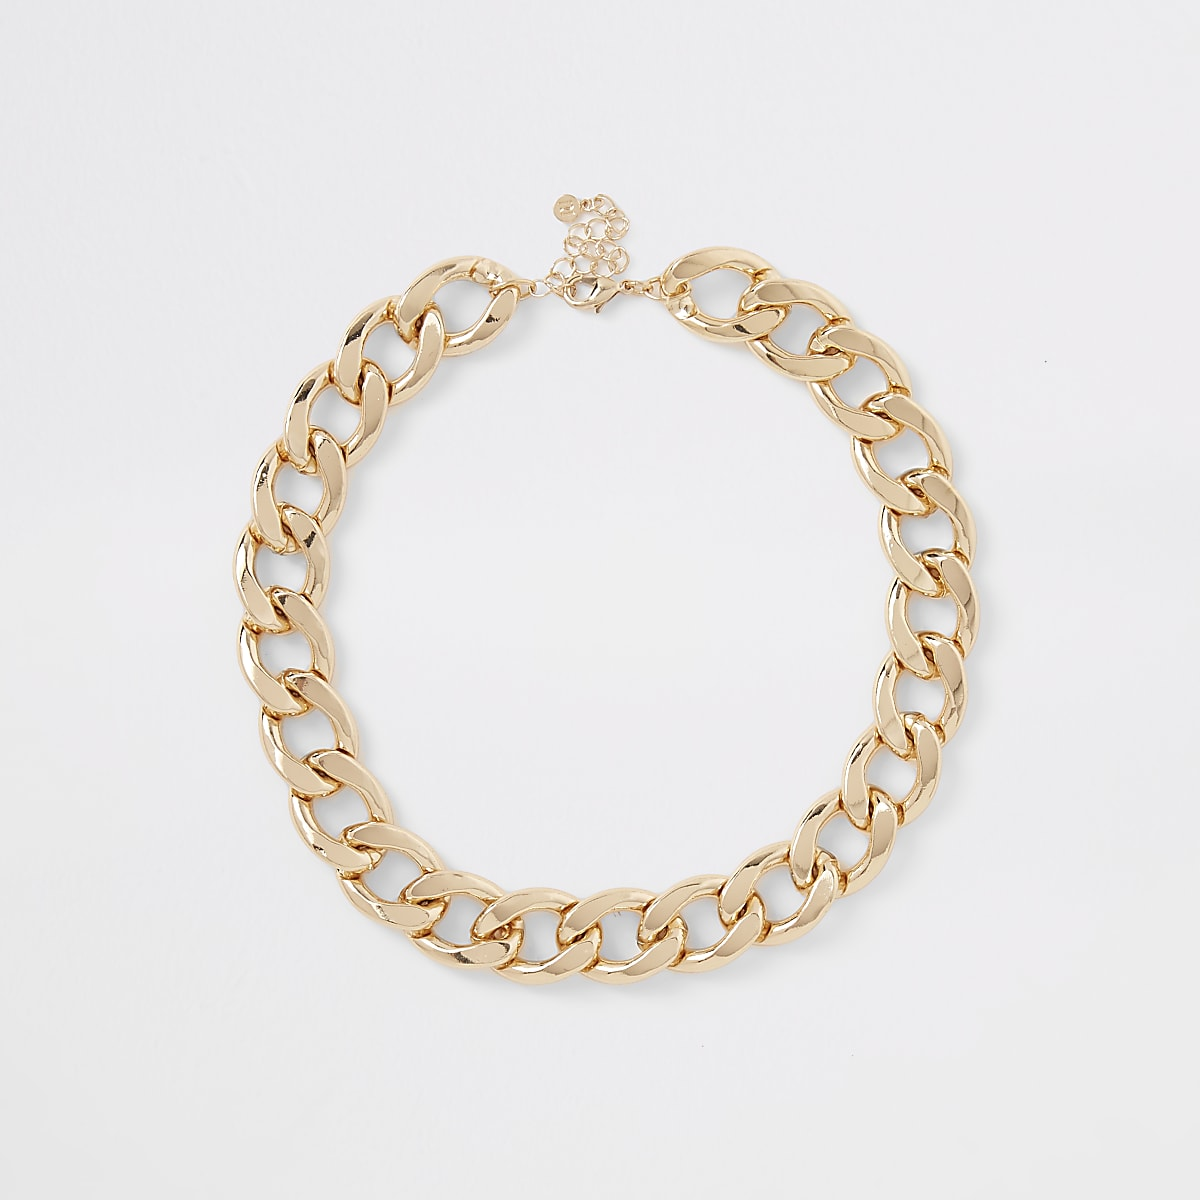 Gold color chunky curb chain necklace